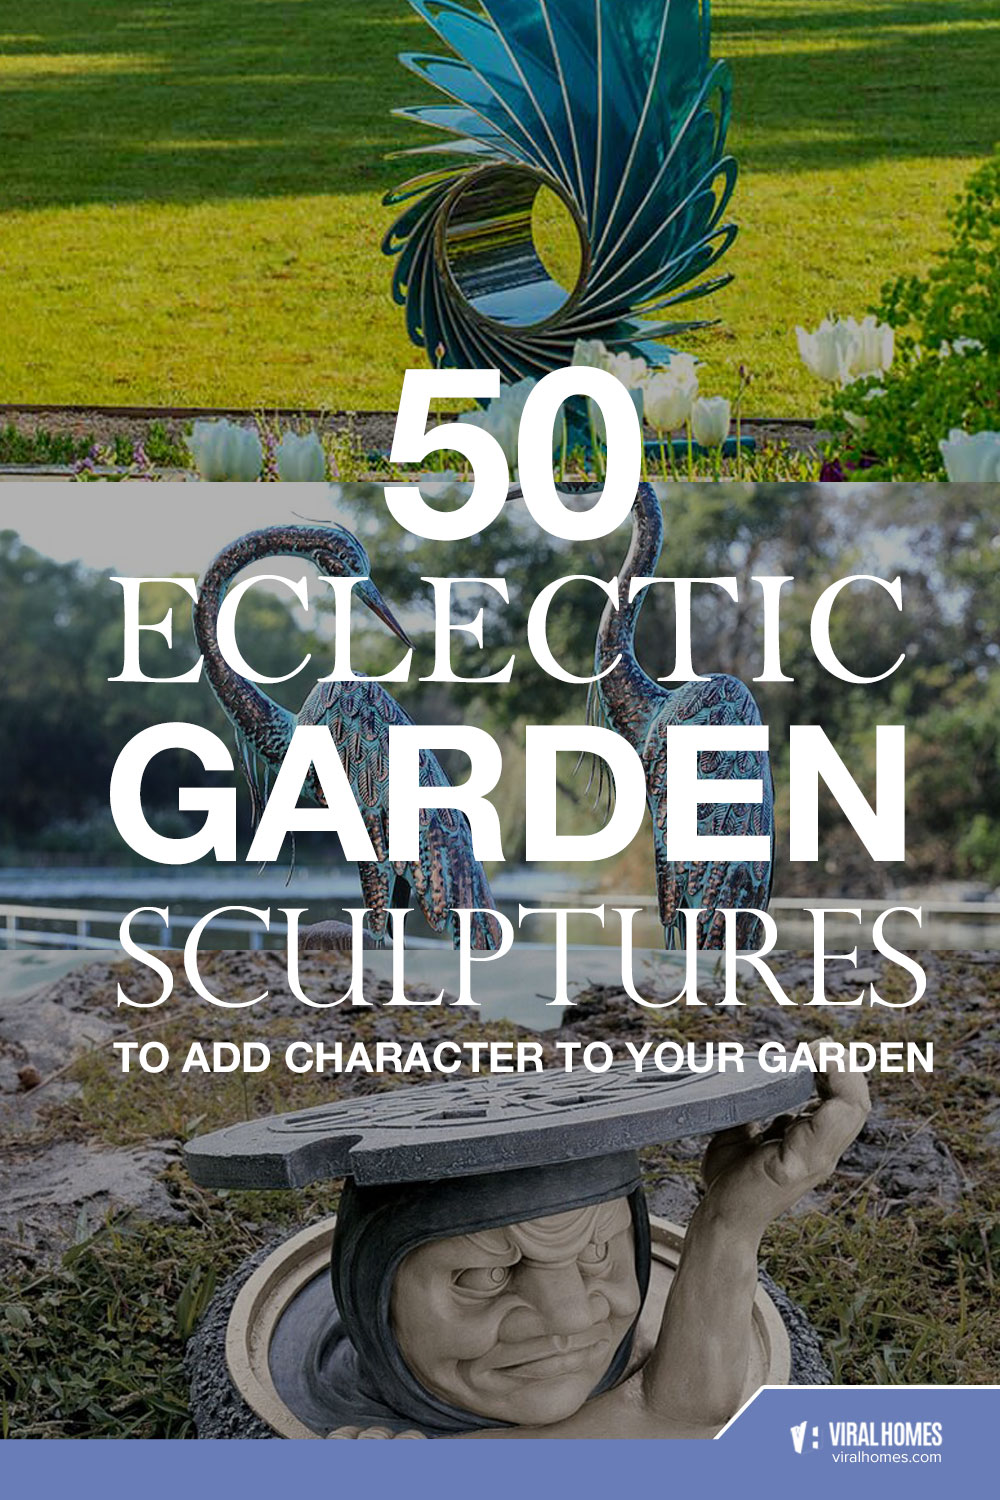 50 Fun and Eclectic Garden Sculptures To Add Character To Your Garden